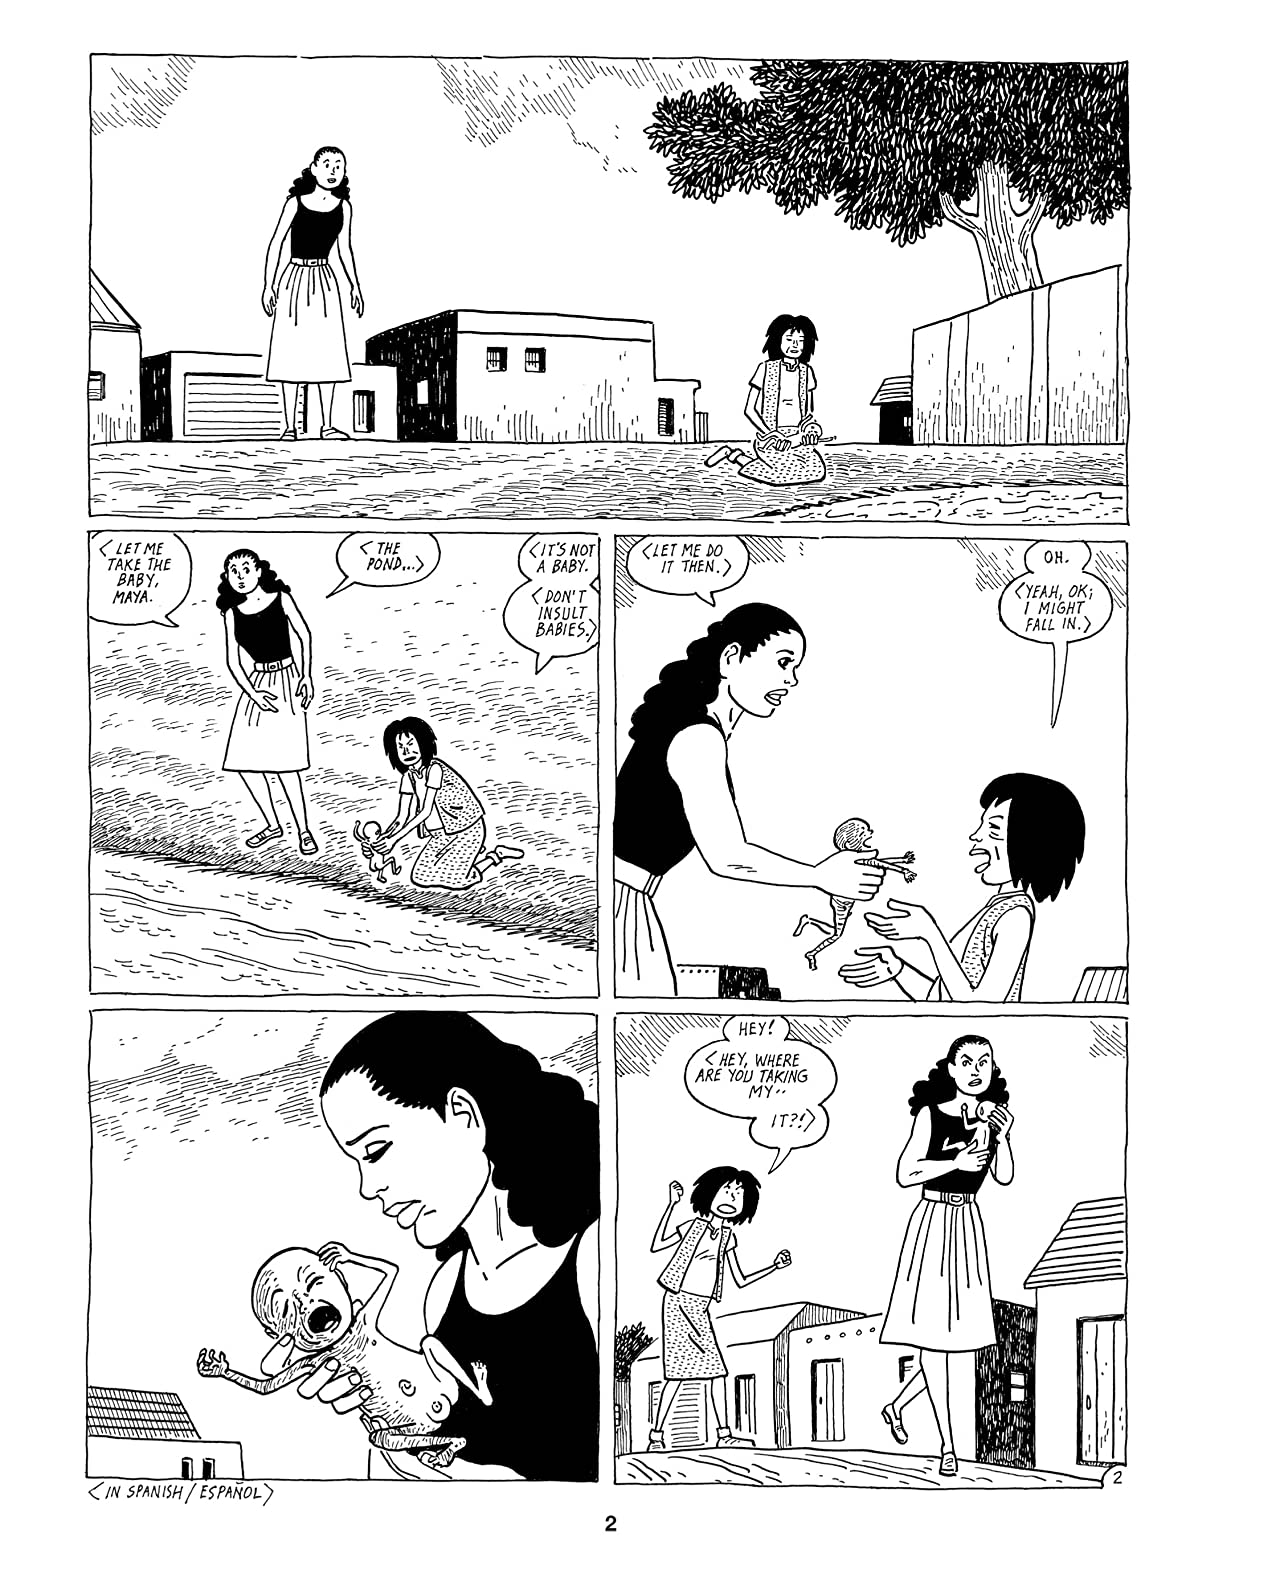 Love & Rockets: New Stories #5